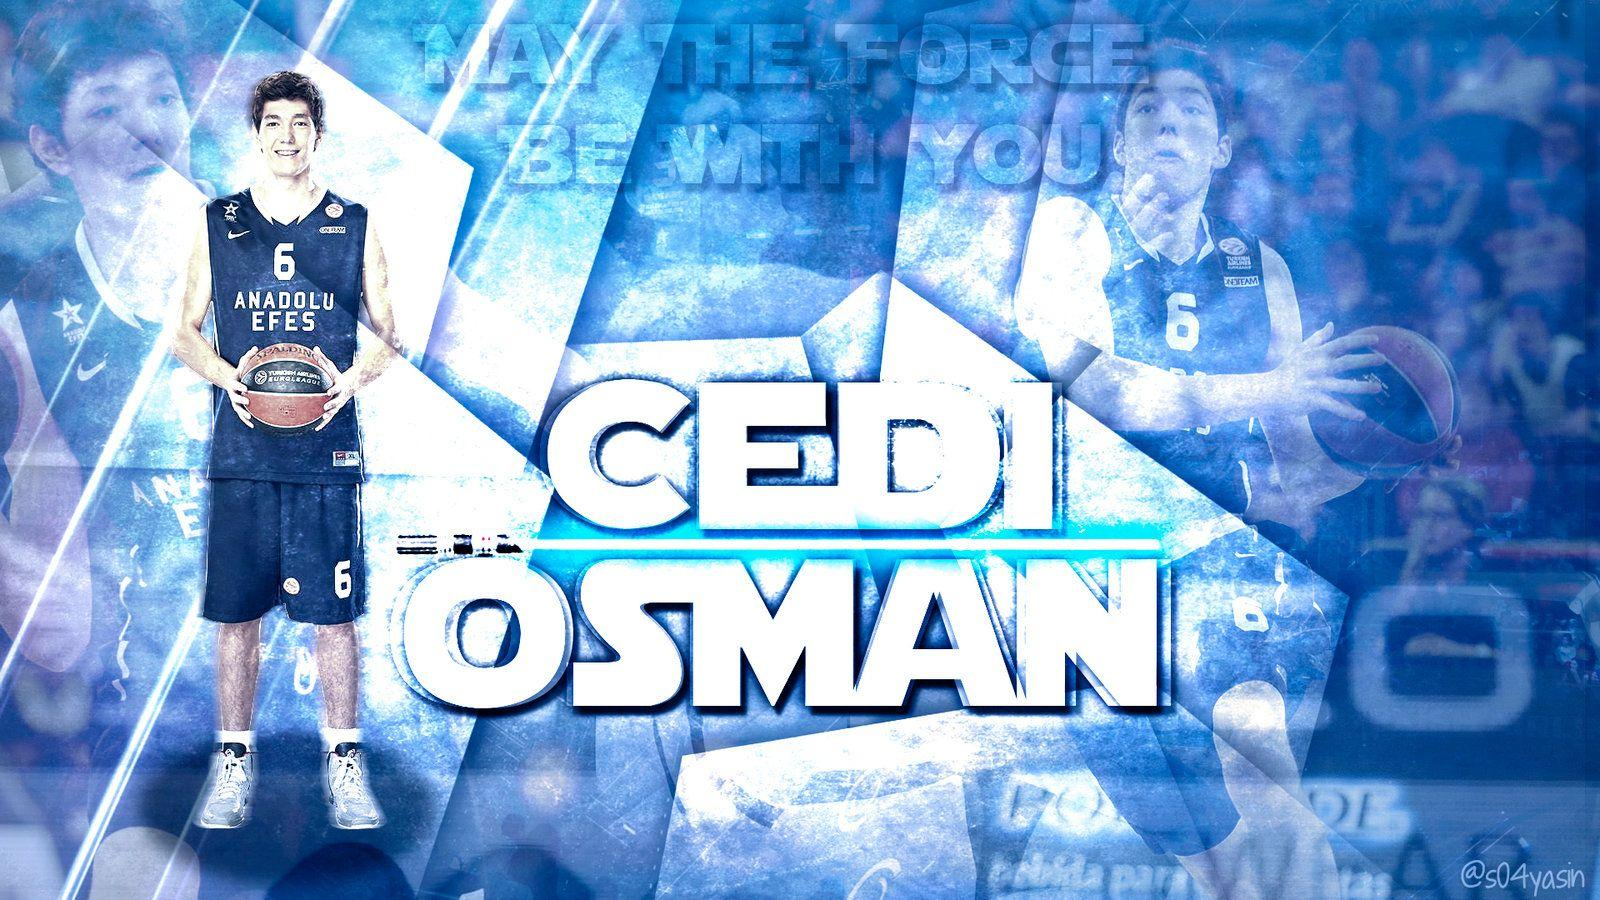 Cedi Osman by elazulreal on DeviantArt